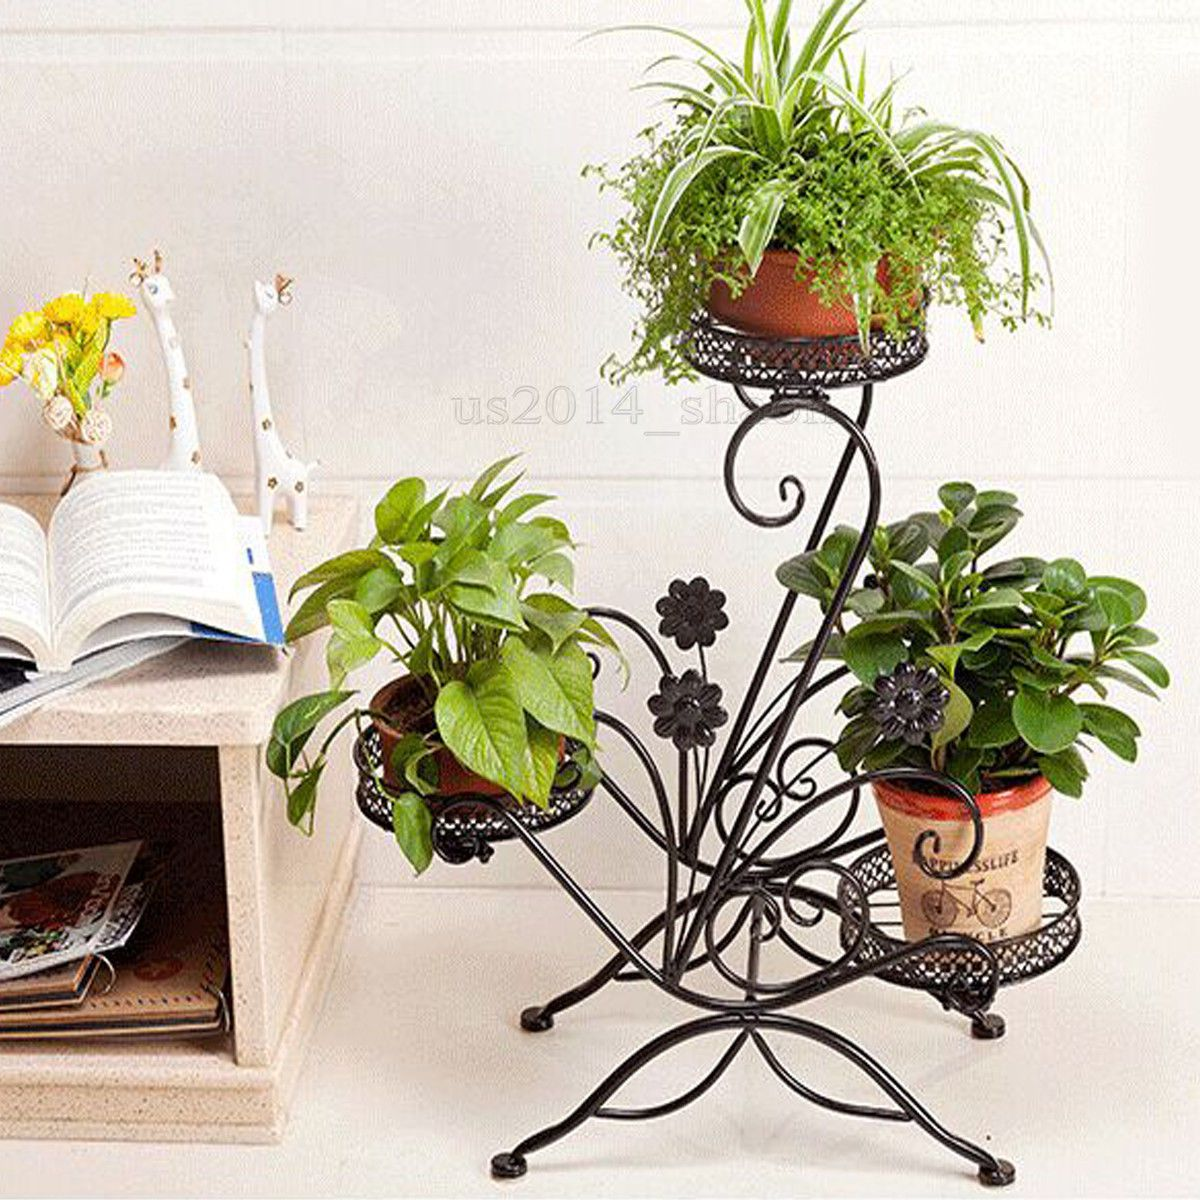 Green Metal Plant Stand Details About Metal Plant Flower Herb Display Stand Shelf